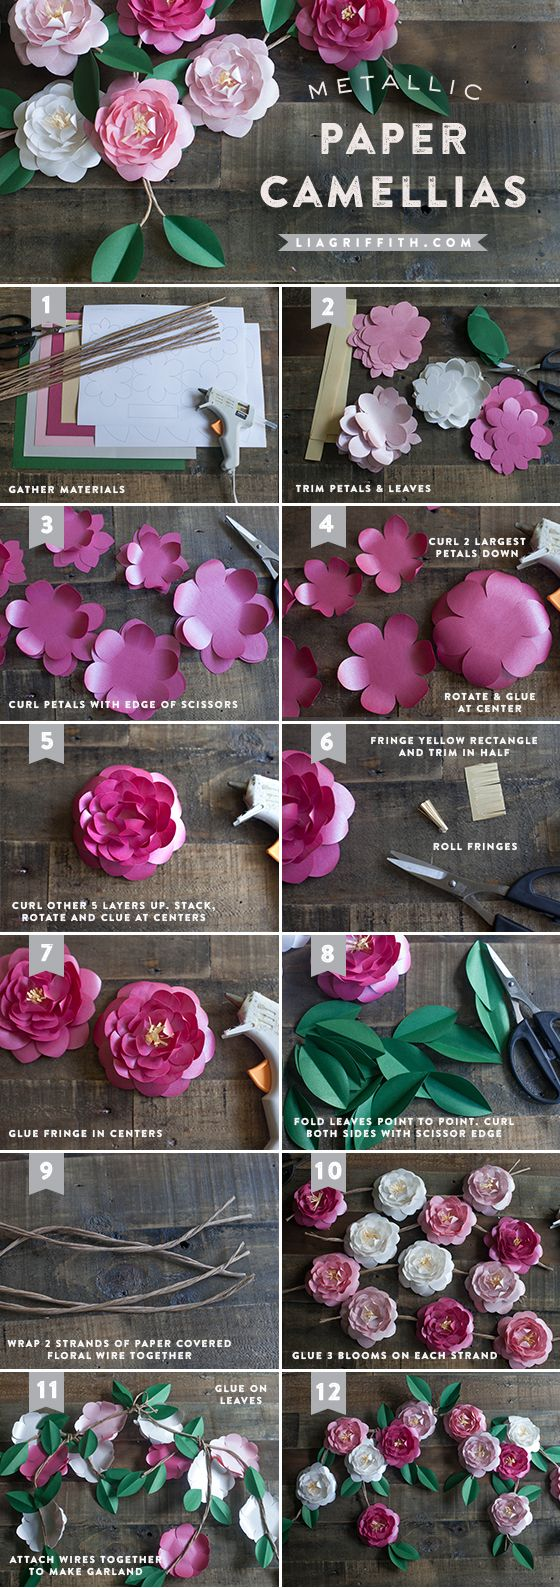 DIY Metallic Paper Camellias | Lia Griffith